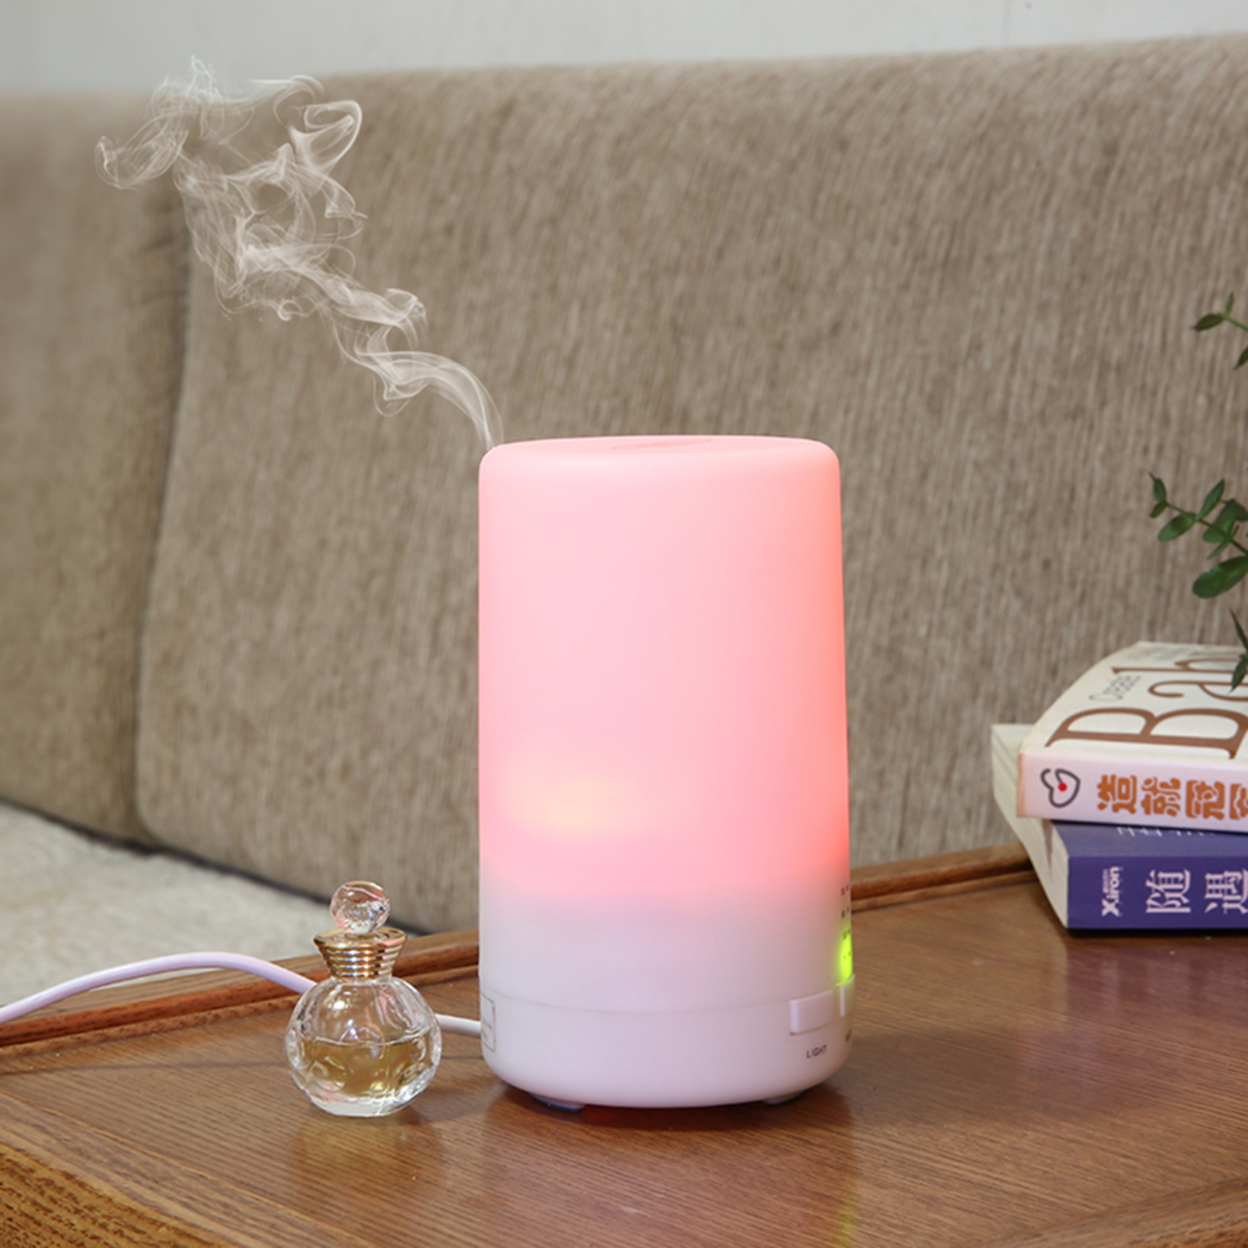 Portable USB Oil Humidifier with Color Changing LED Lights 573249ec8c3d6f40668b47d0